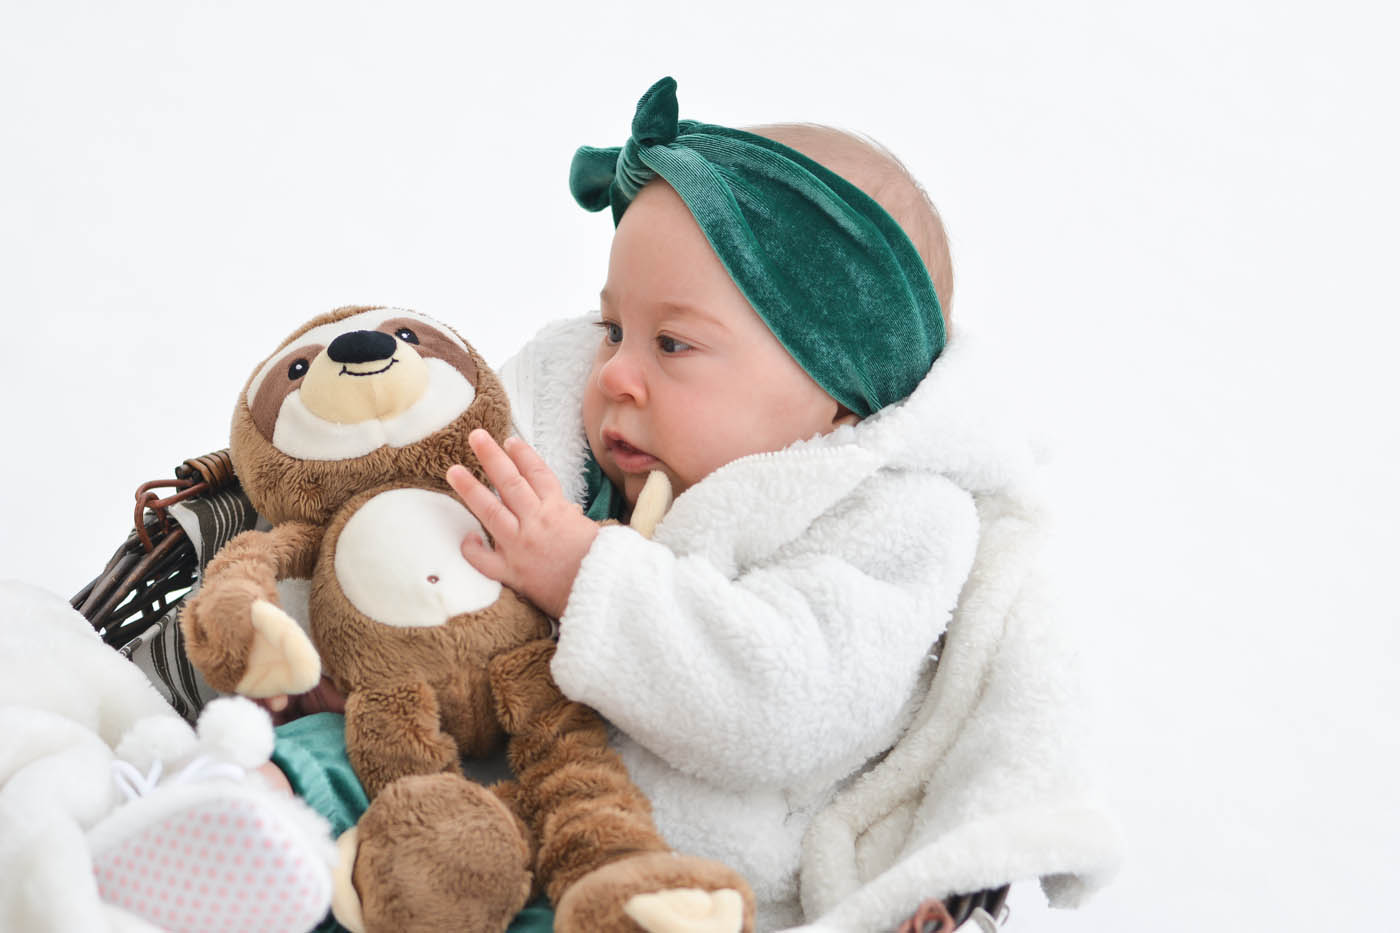 This is a picture of Hadassah holding a stuffed sloth toy. She's looking at it and reaching for its face with one hand.